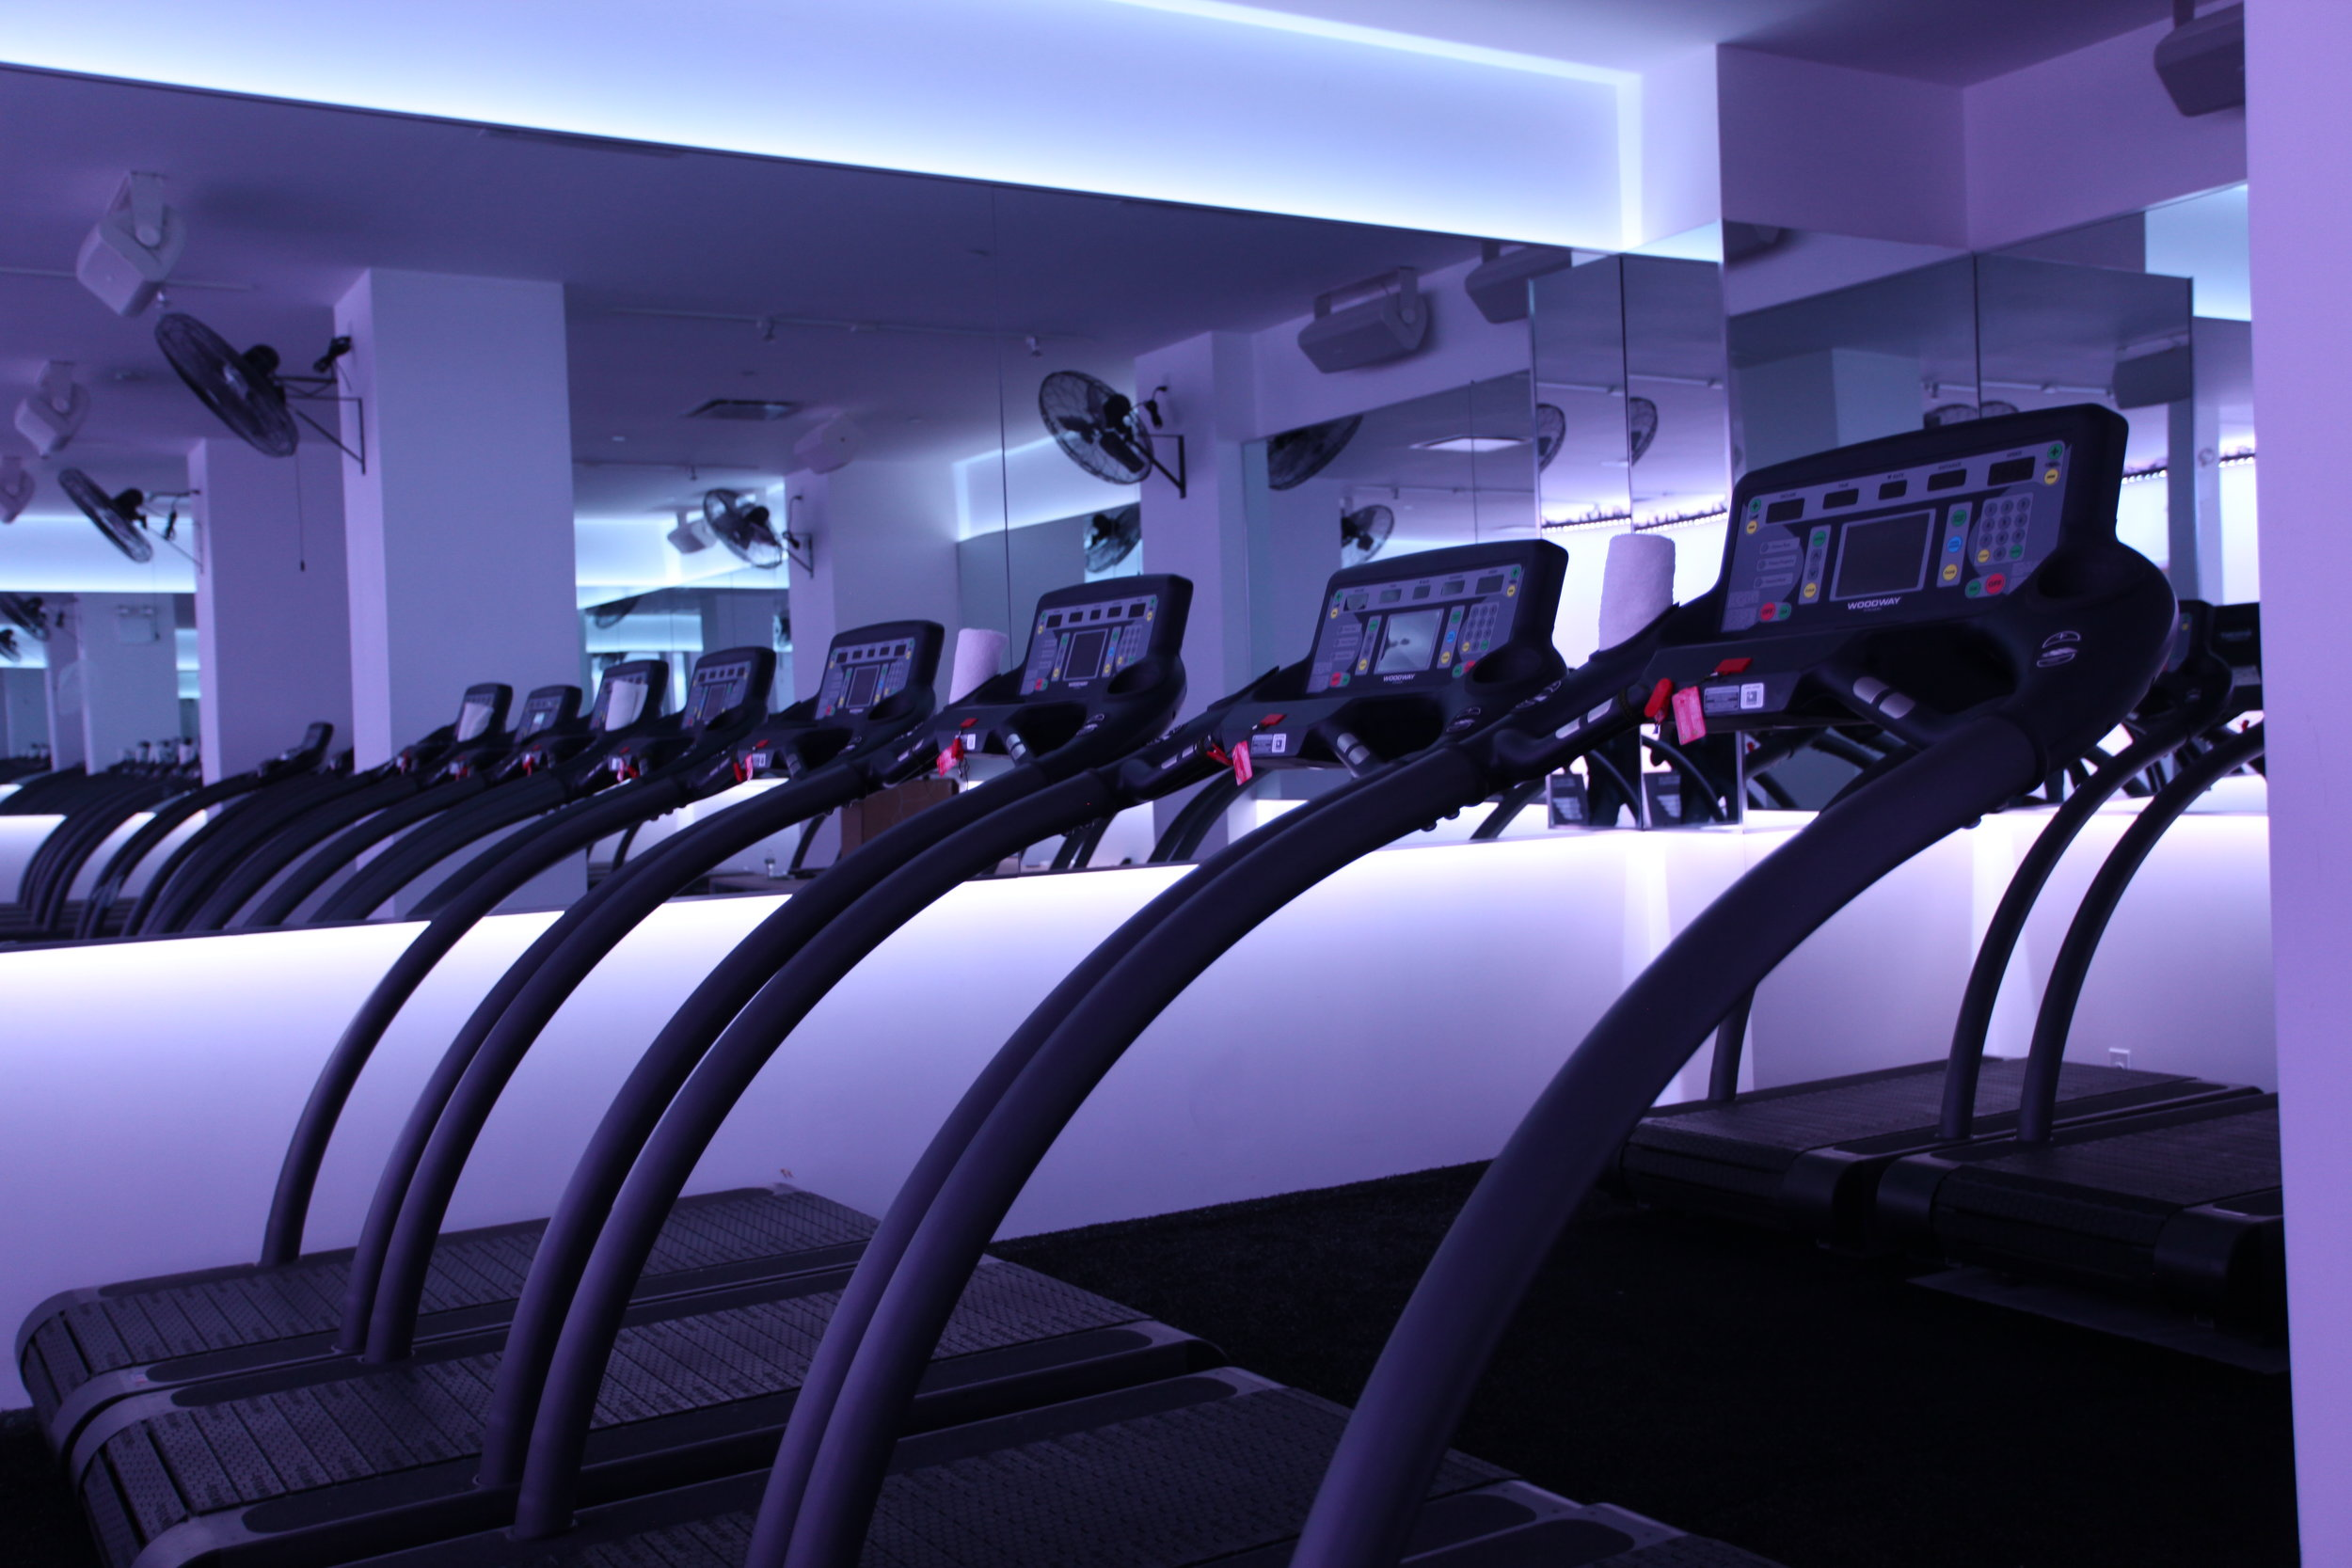 Dim purple lighting in the studio of the Mile High Run Club with multiple treadmills arranged side by side. MEP provided by 2L Engineering.